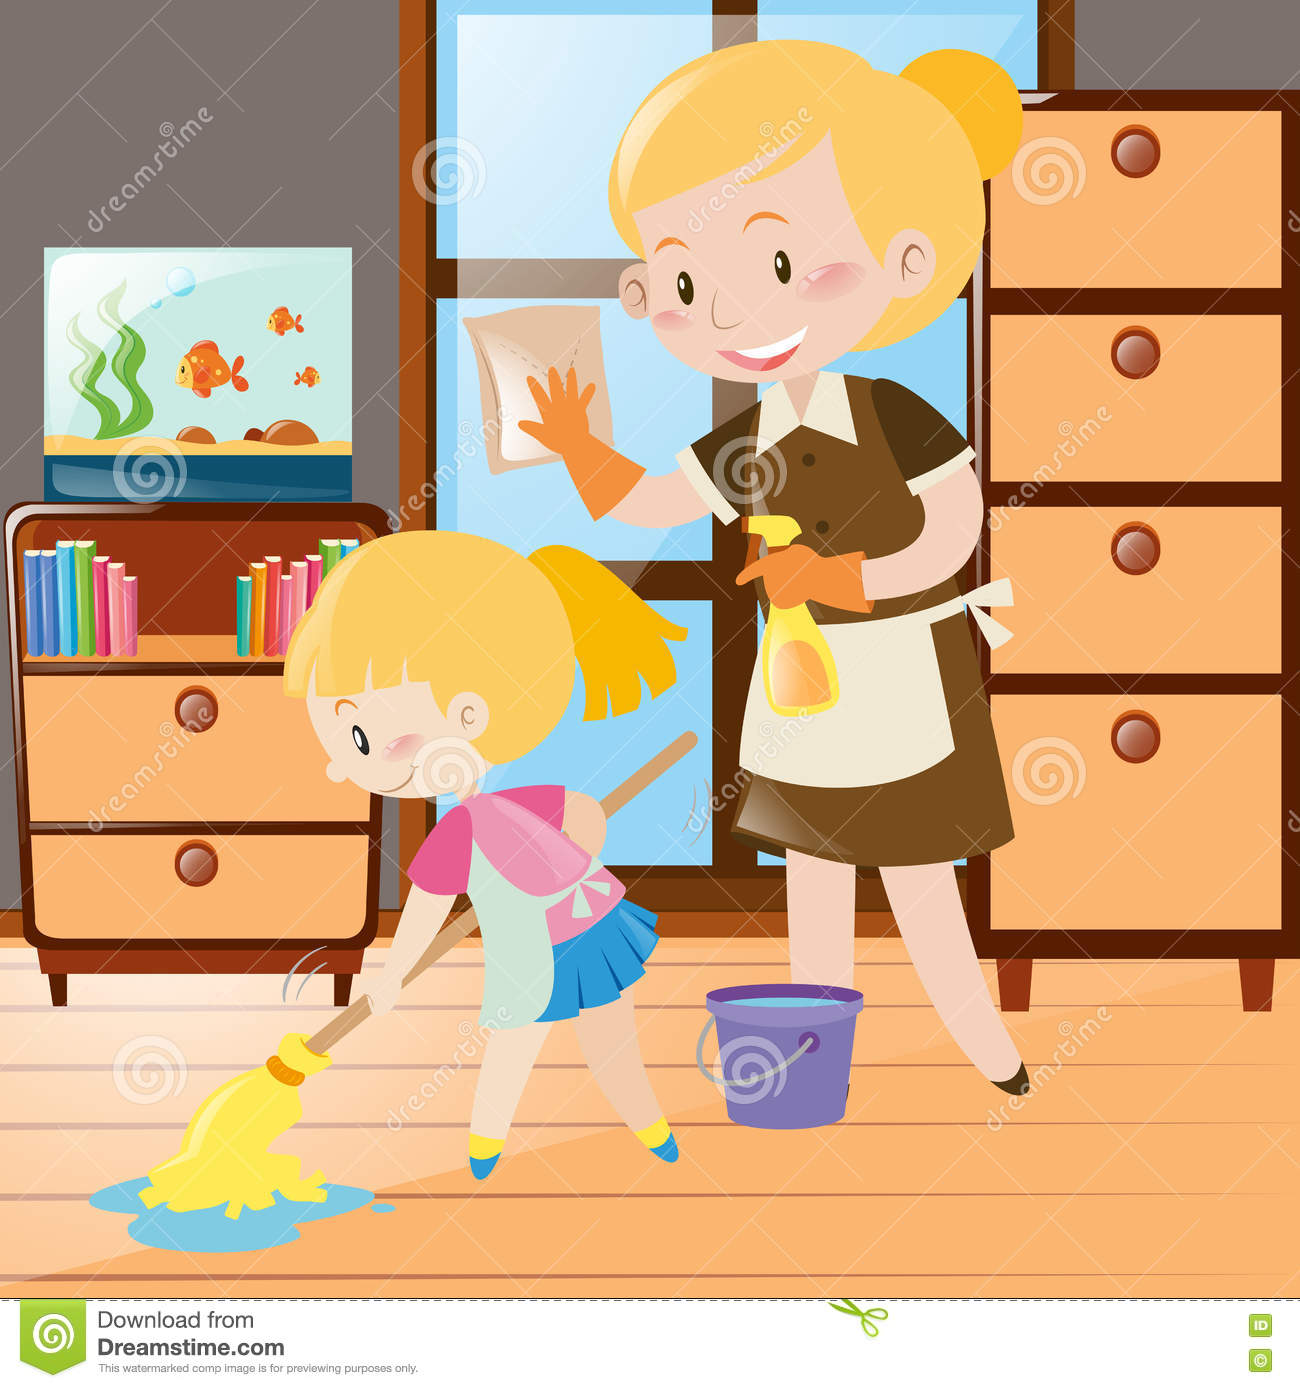 Cleaning The House mother and daughter cleaning the house stock vector - image: 78803356